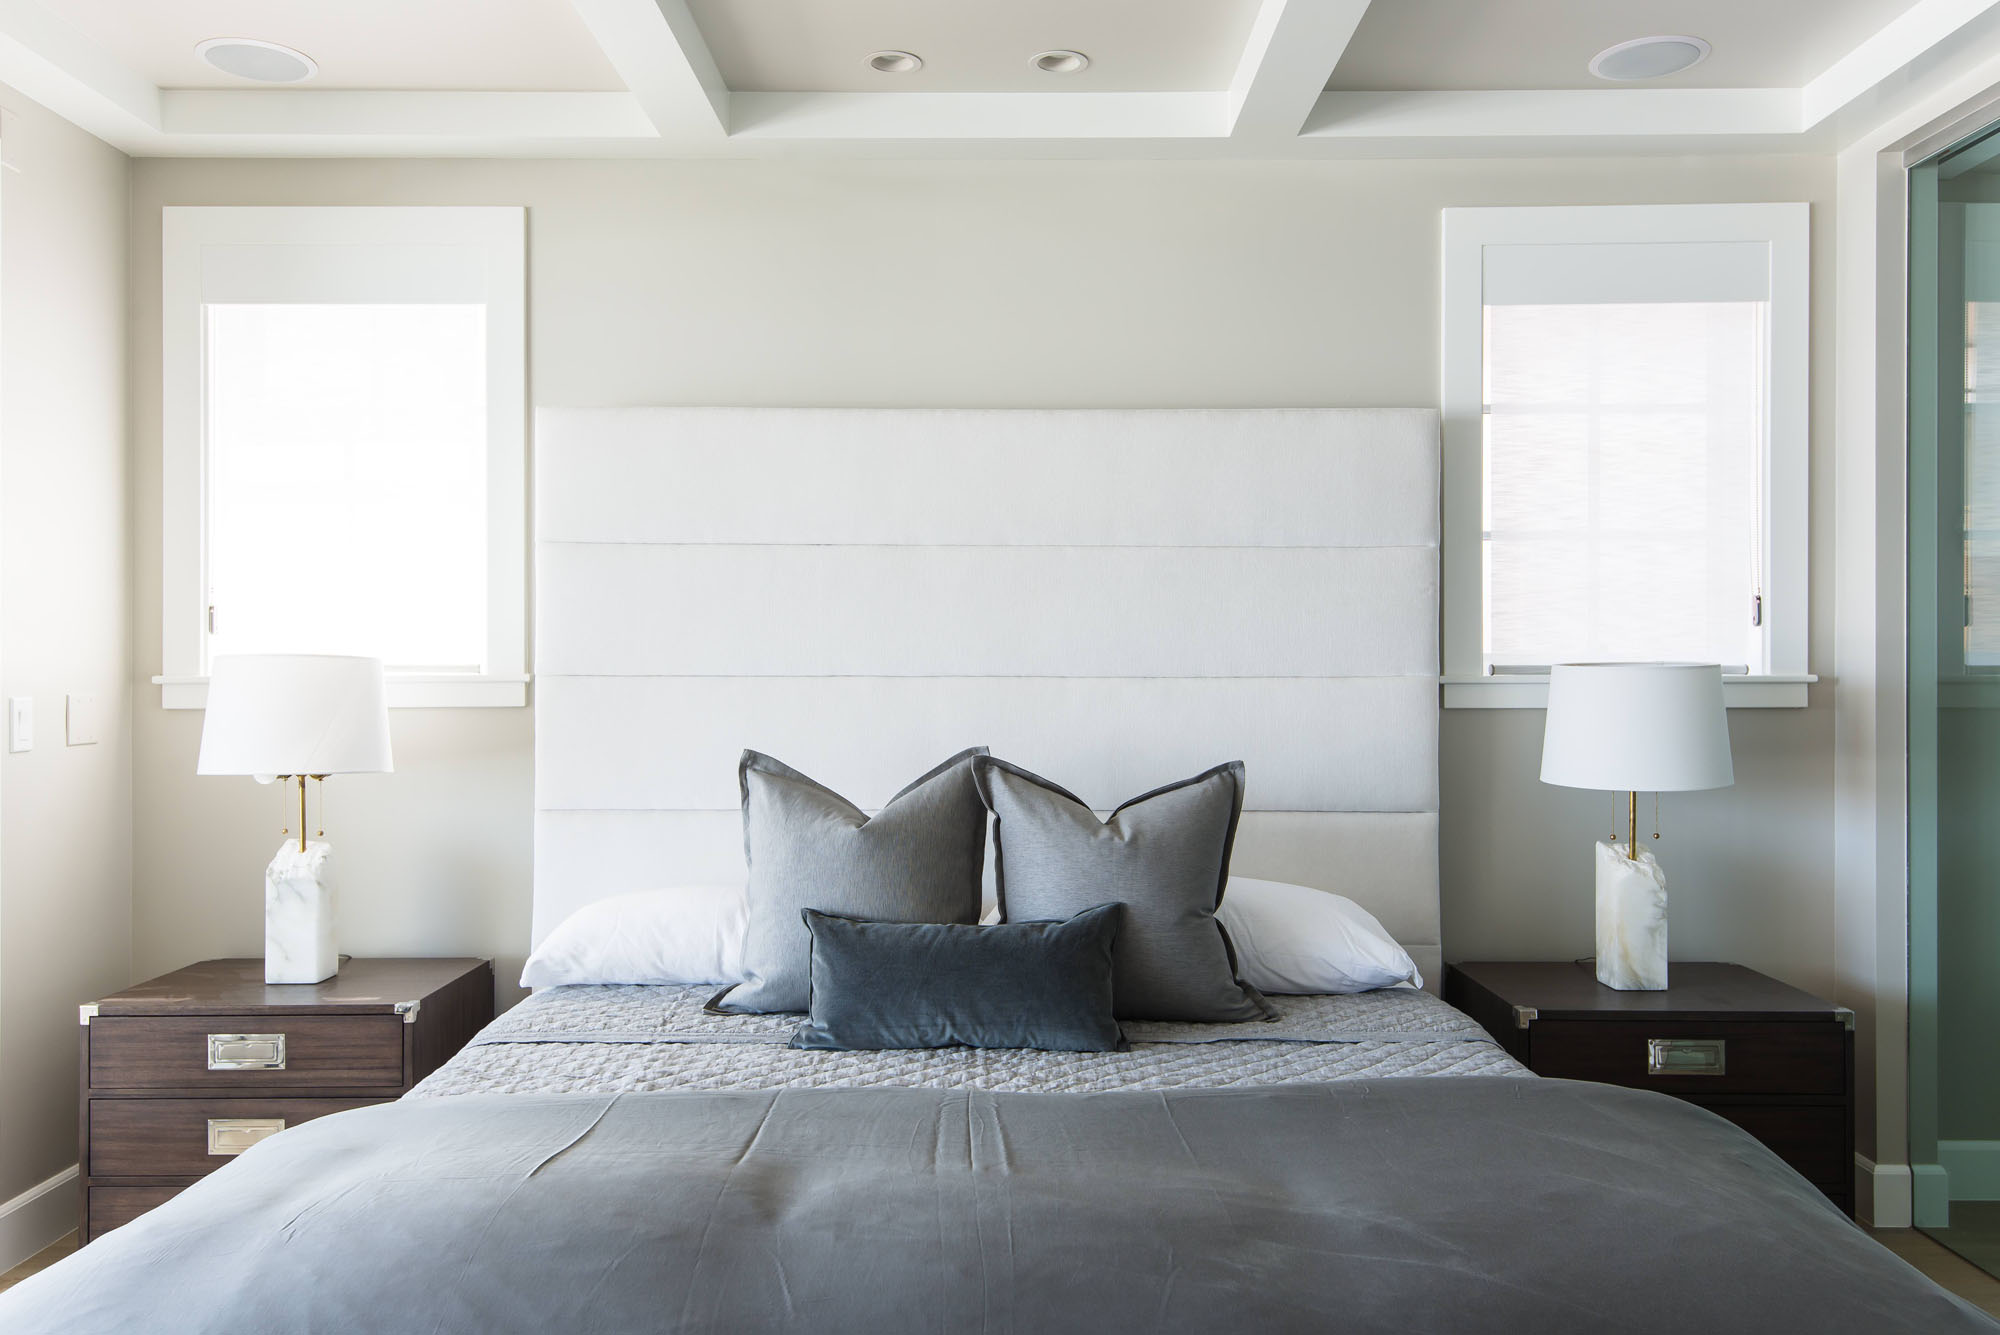 Bedroom Horizontal Channel Headboard Gray White Beach House Melissa Morgan Design